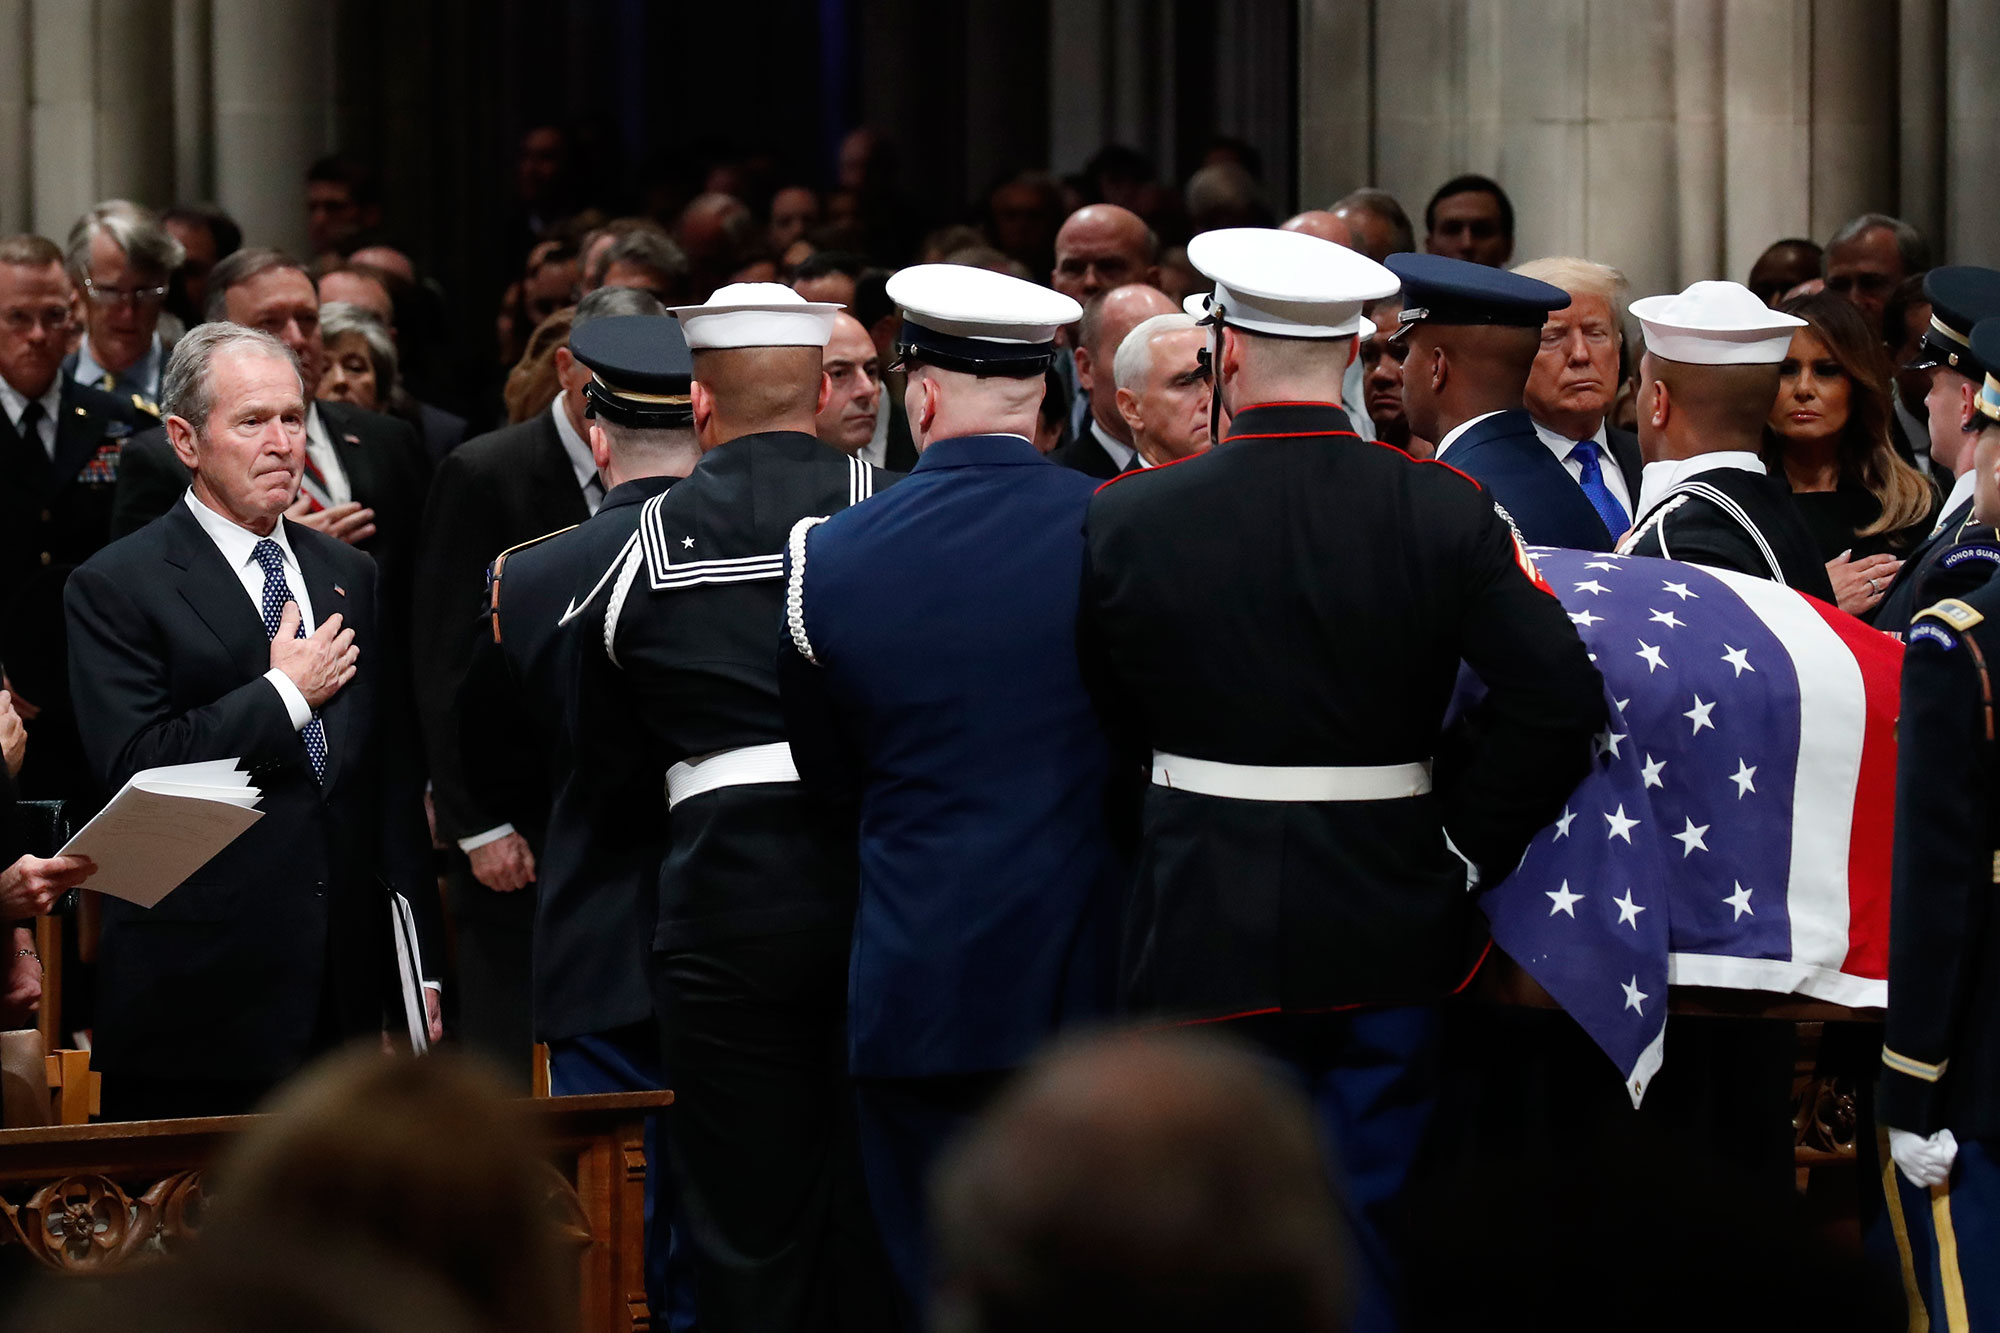 "<div class=""meta image-caption""><div class=""origin-logo origin-image none""><span>none</span></div><span class=""caption-text"">Former President George W. Bush places his hand over his heart as the flag-draped casket of former President George H.W. Bush is carried. (Alex Brandon, Pool/AP Photo)</span></div>"